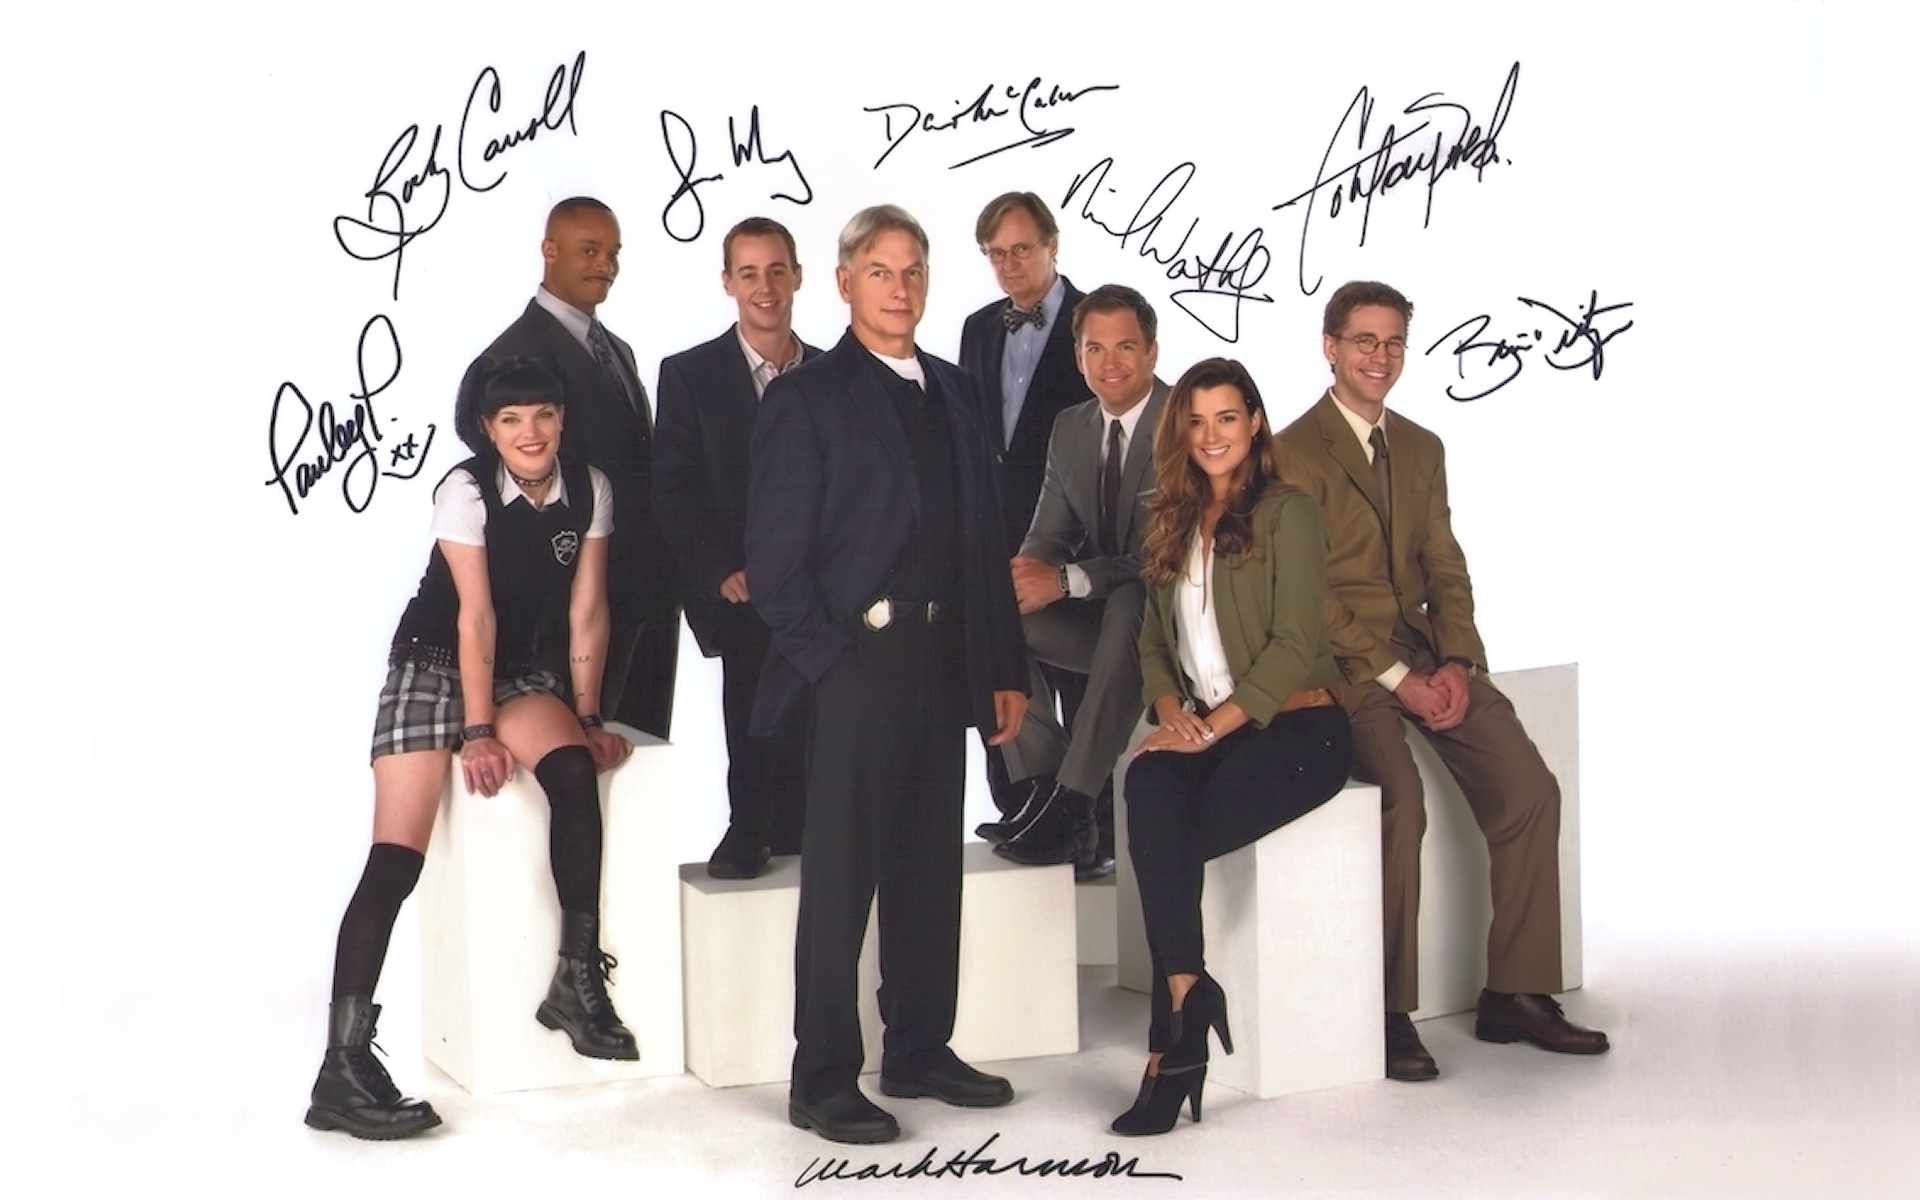 NCIS NCIS Cast Wallpaper